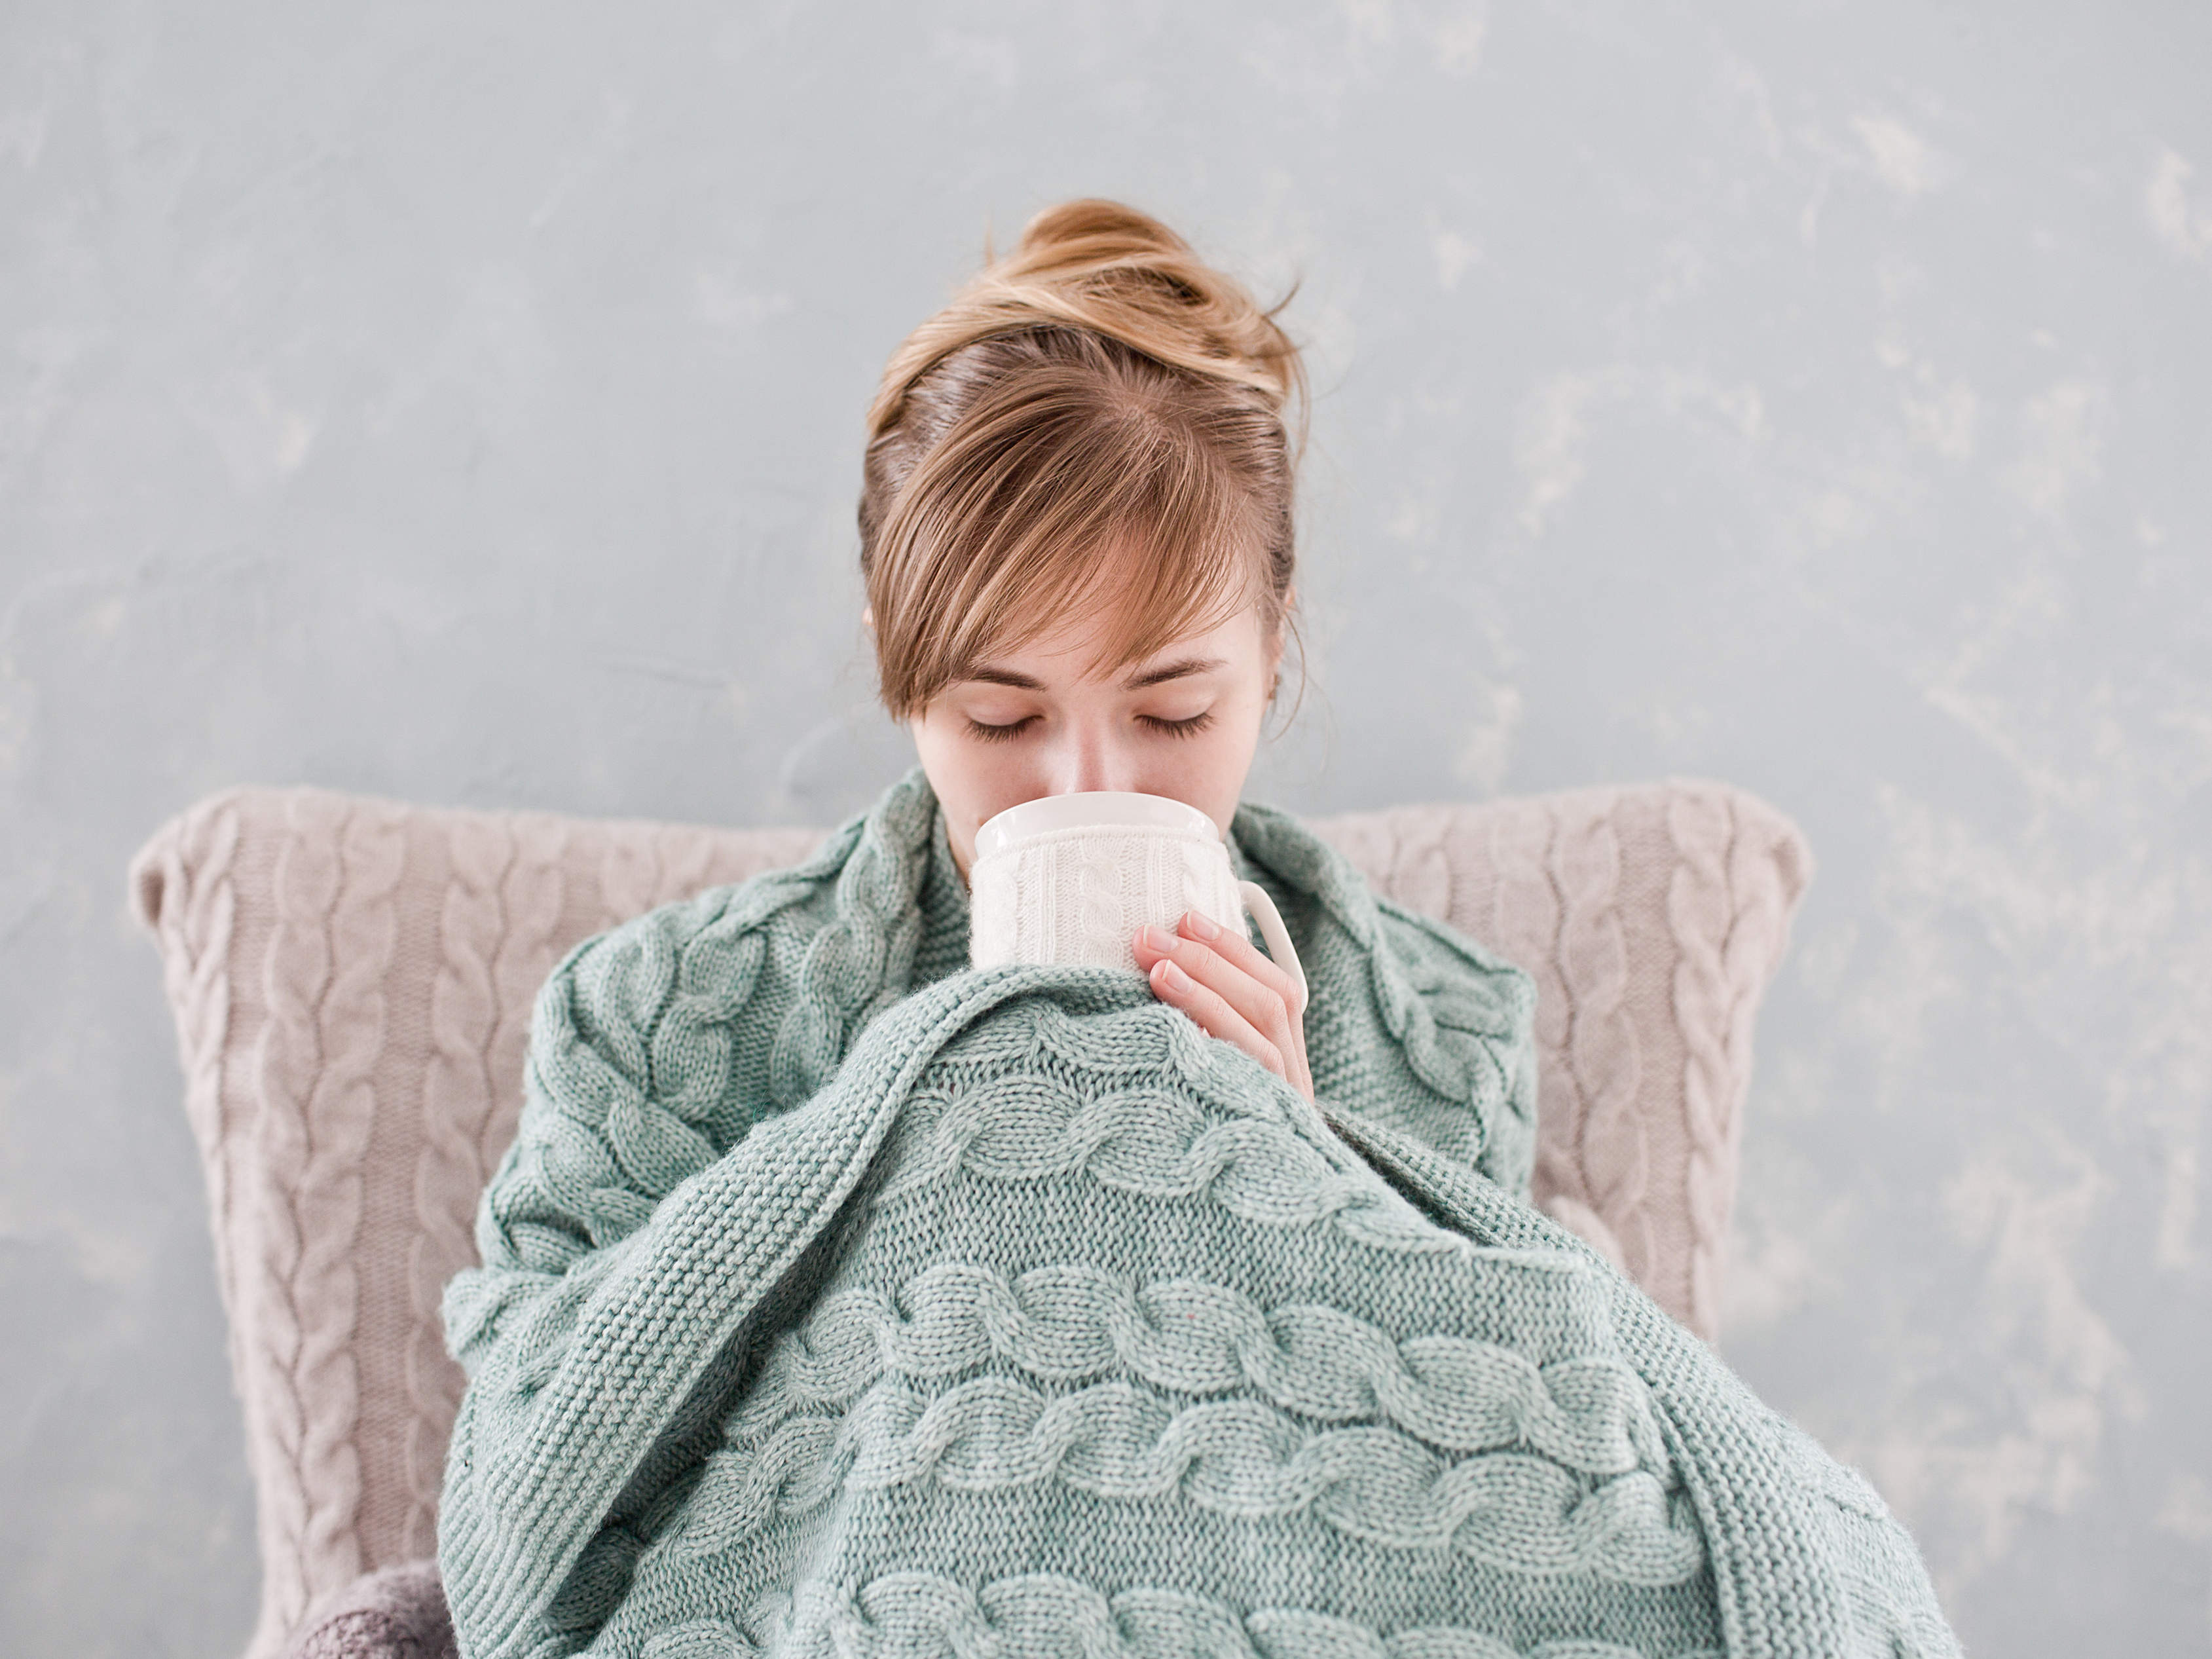 Best foods and drinks for flu